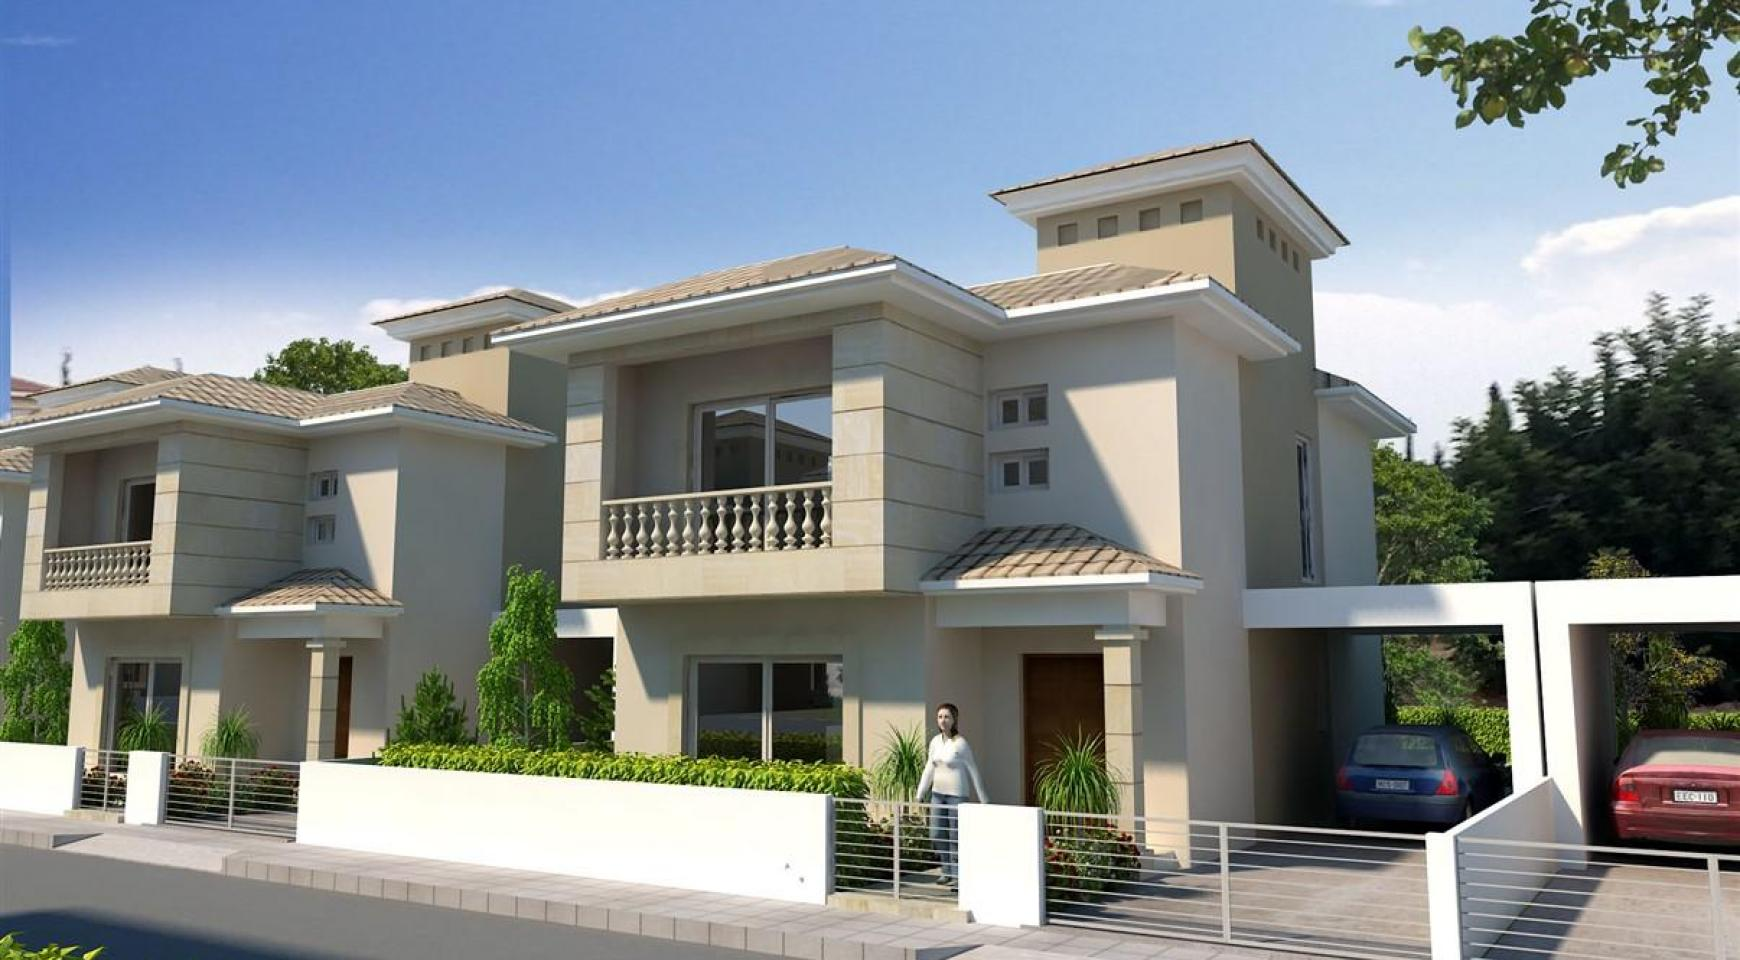 3 Bedroom Villa in a New Project - 6